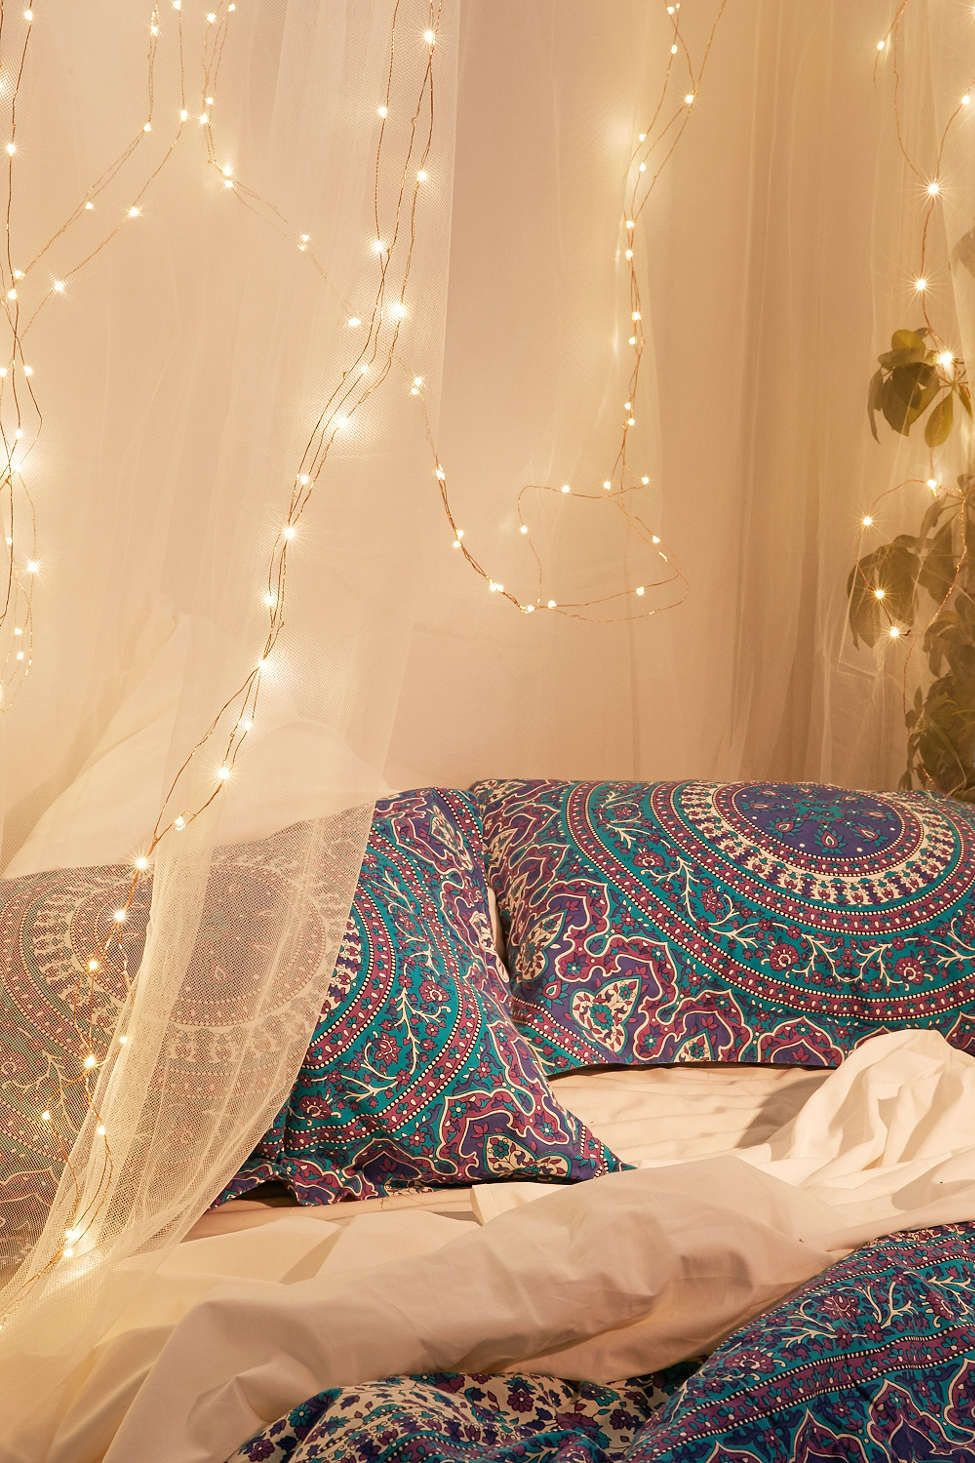 Firefly String Lights Unique Firefly String Lights  Urban Outfitters …  Interior Design Ideas Decorating Inspiration